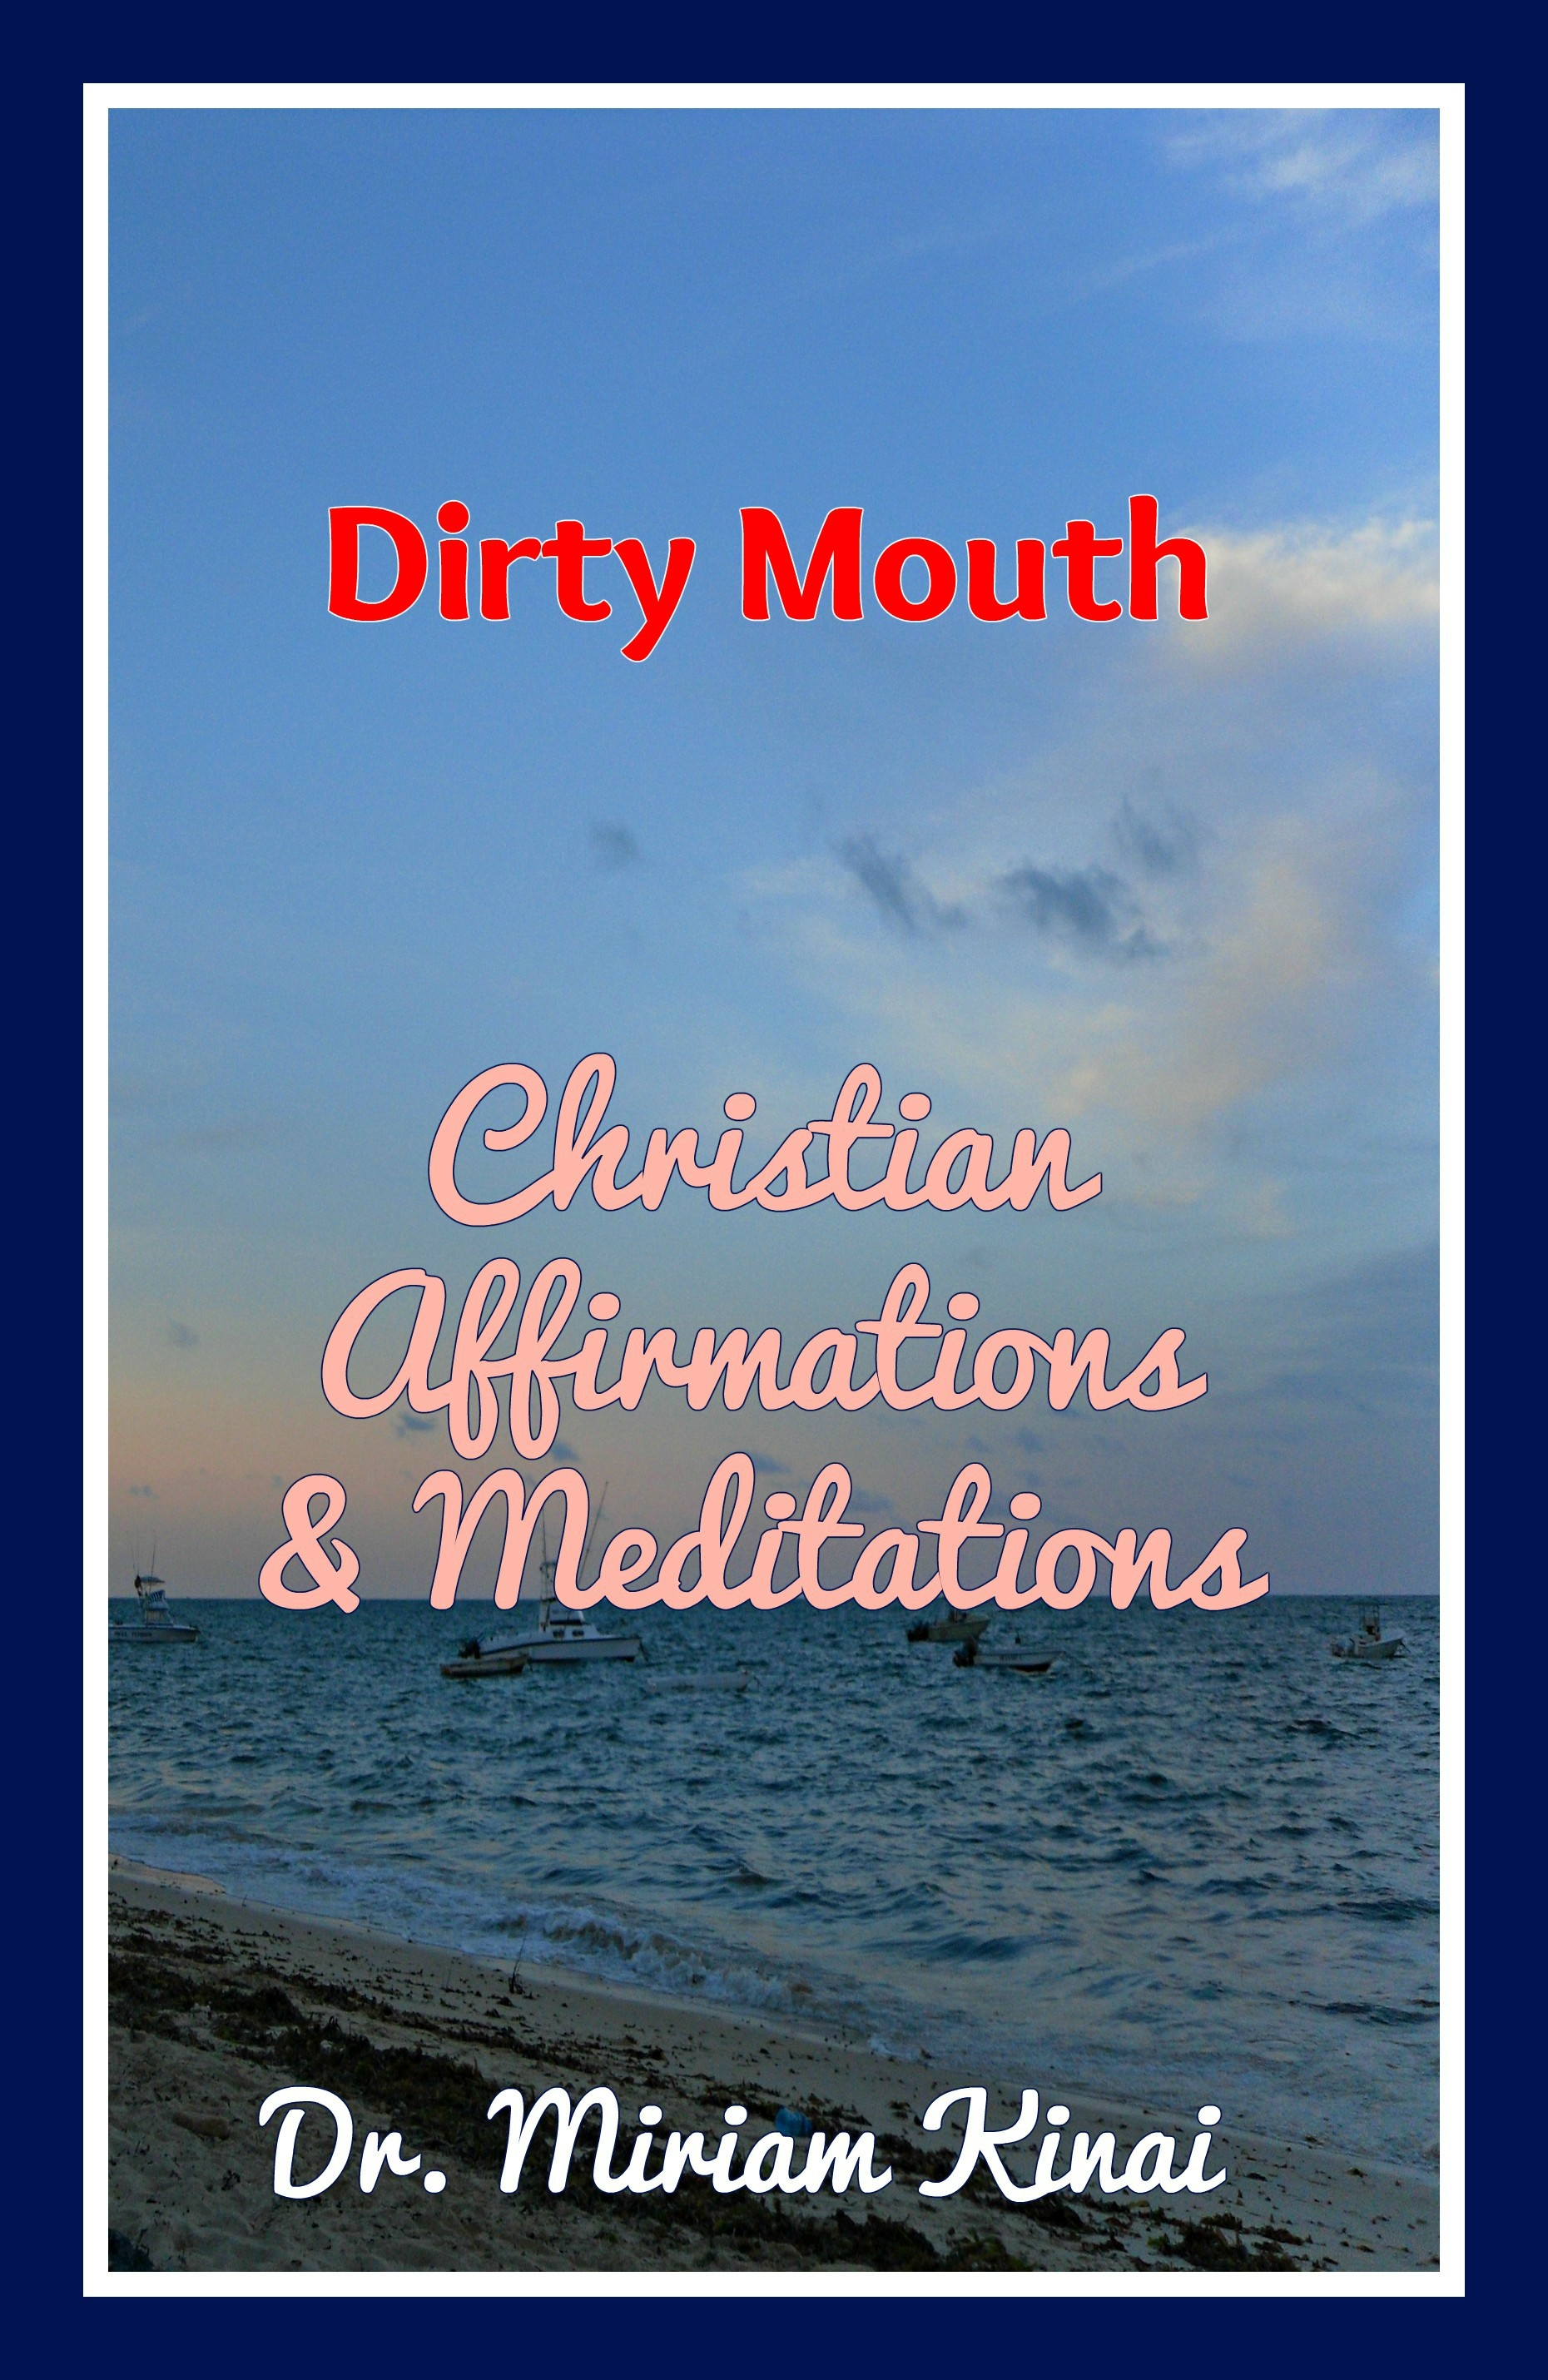 Christian Affirmations and Meditations to Clean a Dirty Mouth